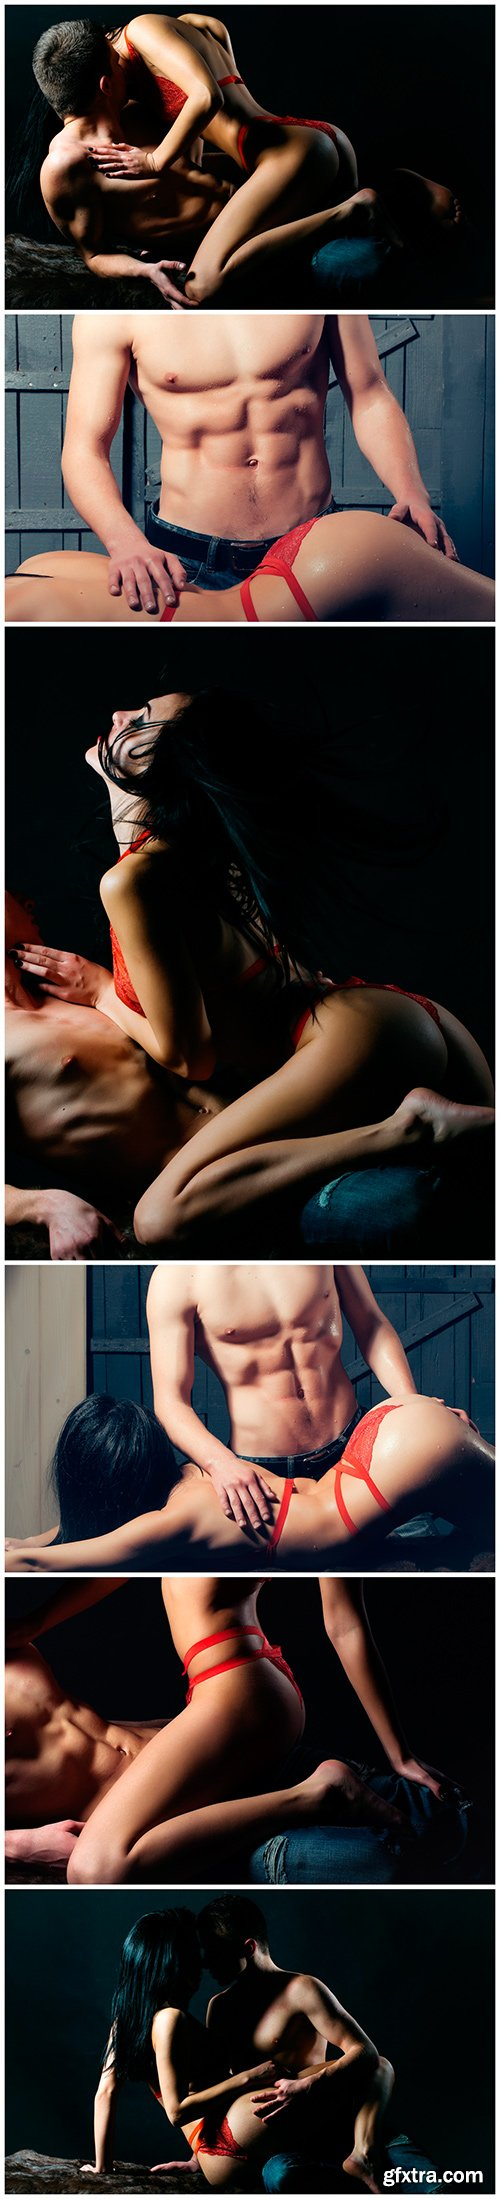 Sexy young couple in passion - 6UHQ JPEG